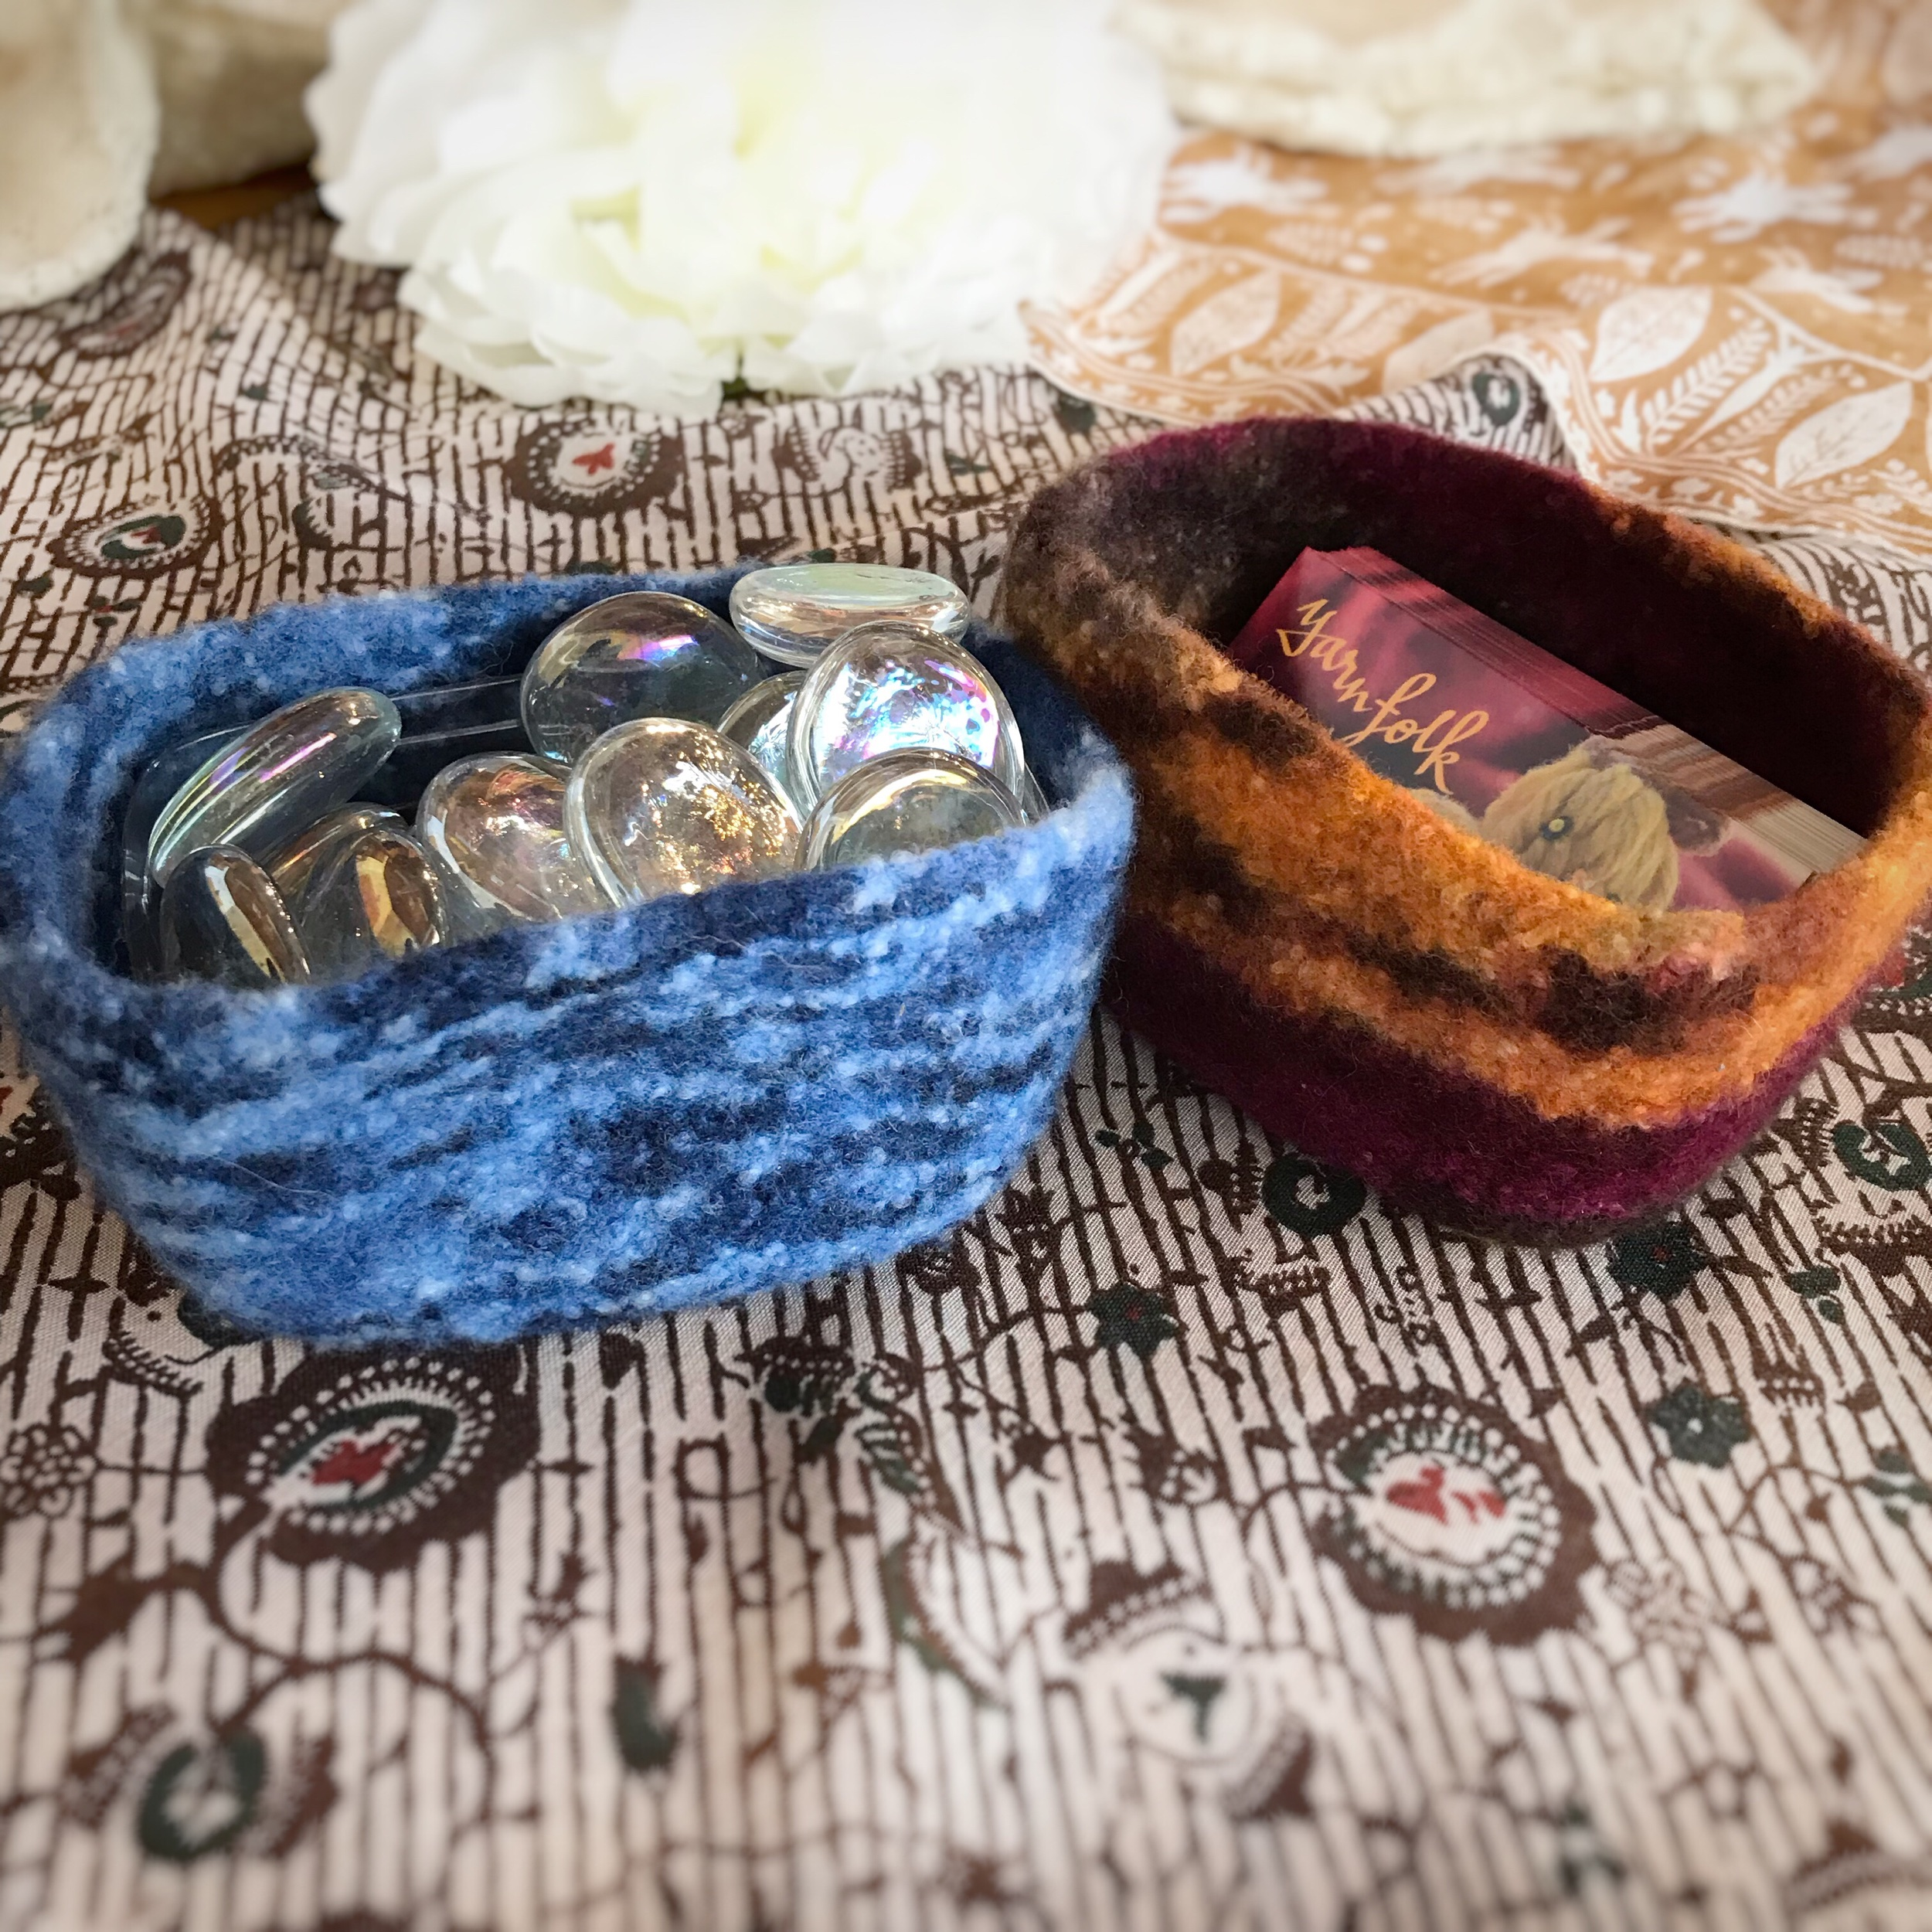 CURRENT CLASSES & EVENTS - Project CircleJuly 26, 5:00-7:00pm | no charge.Join us to work on your longer term projects!Cast On/Bind Off [two spaces left]July 27, 10:00am-2:00pm | Instructor: Sandy Buzzelli | $40 + materialsThe look and fit of our knitted items is greatly influenced by the cast on and bind off methods we choose. If we need stretch for the cuff of a sock, we might choose one of several variations of the long tail cast on for cuff-down socks or the suspended bind off for toe-up socks. For a beautiful finish on a ribbed collar, we might choose the tubular cast on/bind off. If we are binding off after knitting garter stitch, we might use the sewn bind off.We'll explore these and many more ways to get stitches on and off our needles (crochet cast on and bind off, Emily Ocker's cast on, 3-needle bind off, I-cord bind off), and we'll come away with a general understanding of when and how to use each method.As an added bonus, we'll also discuss how to deal with two pesky issues that crop up when binding off: that loose last stitch when doing the traditional bind off and the jog that happens when binding off in circular knitting.Prerequisite: you should know how to cast on, knit, purl, and bind off.Felting By Hand [DATE CORRECTION]August 3, 10:00am-1:00pm | Instructor: Sandy Buzzelli | $30 + materialsYou'll never run out of uses for this adorable little felted basket! It's perfect for holding jewelry, keys, business cards or your favorite candy. Tucked near your knitting spot, it's an especially pretty way to keep your knitting notions handy.The basket knits up very quickly and easily, and felting it by hand gives it a classic, finished look.You'll be knitting your basket on your own before class meets so that we'll be ready to jump right in to exploring in-depth how to felt by hand (vs. felting in a washing machine).Please note: felting by hand is a mildly physical activity. It involves standing, bending over a sink, and lifting a large bowl of water. In add